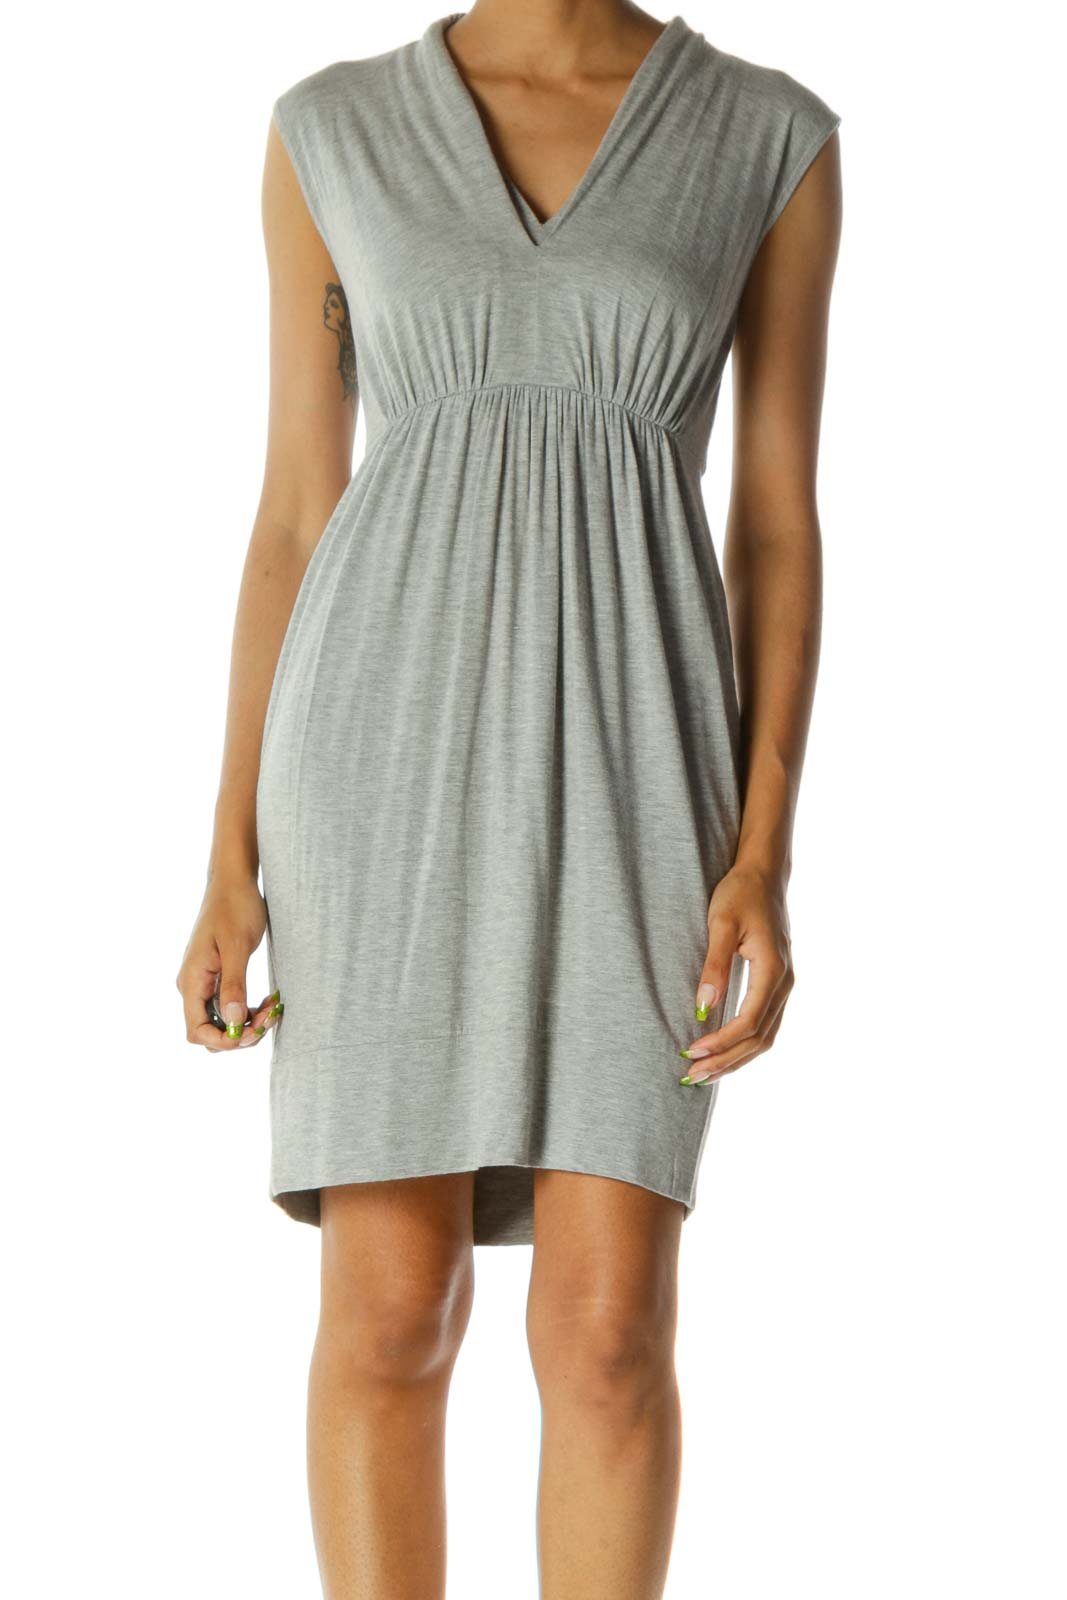 Gray V-Neck Stretch Jersey-Knit Day Dress